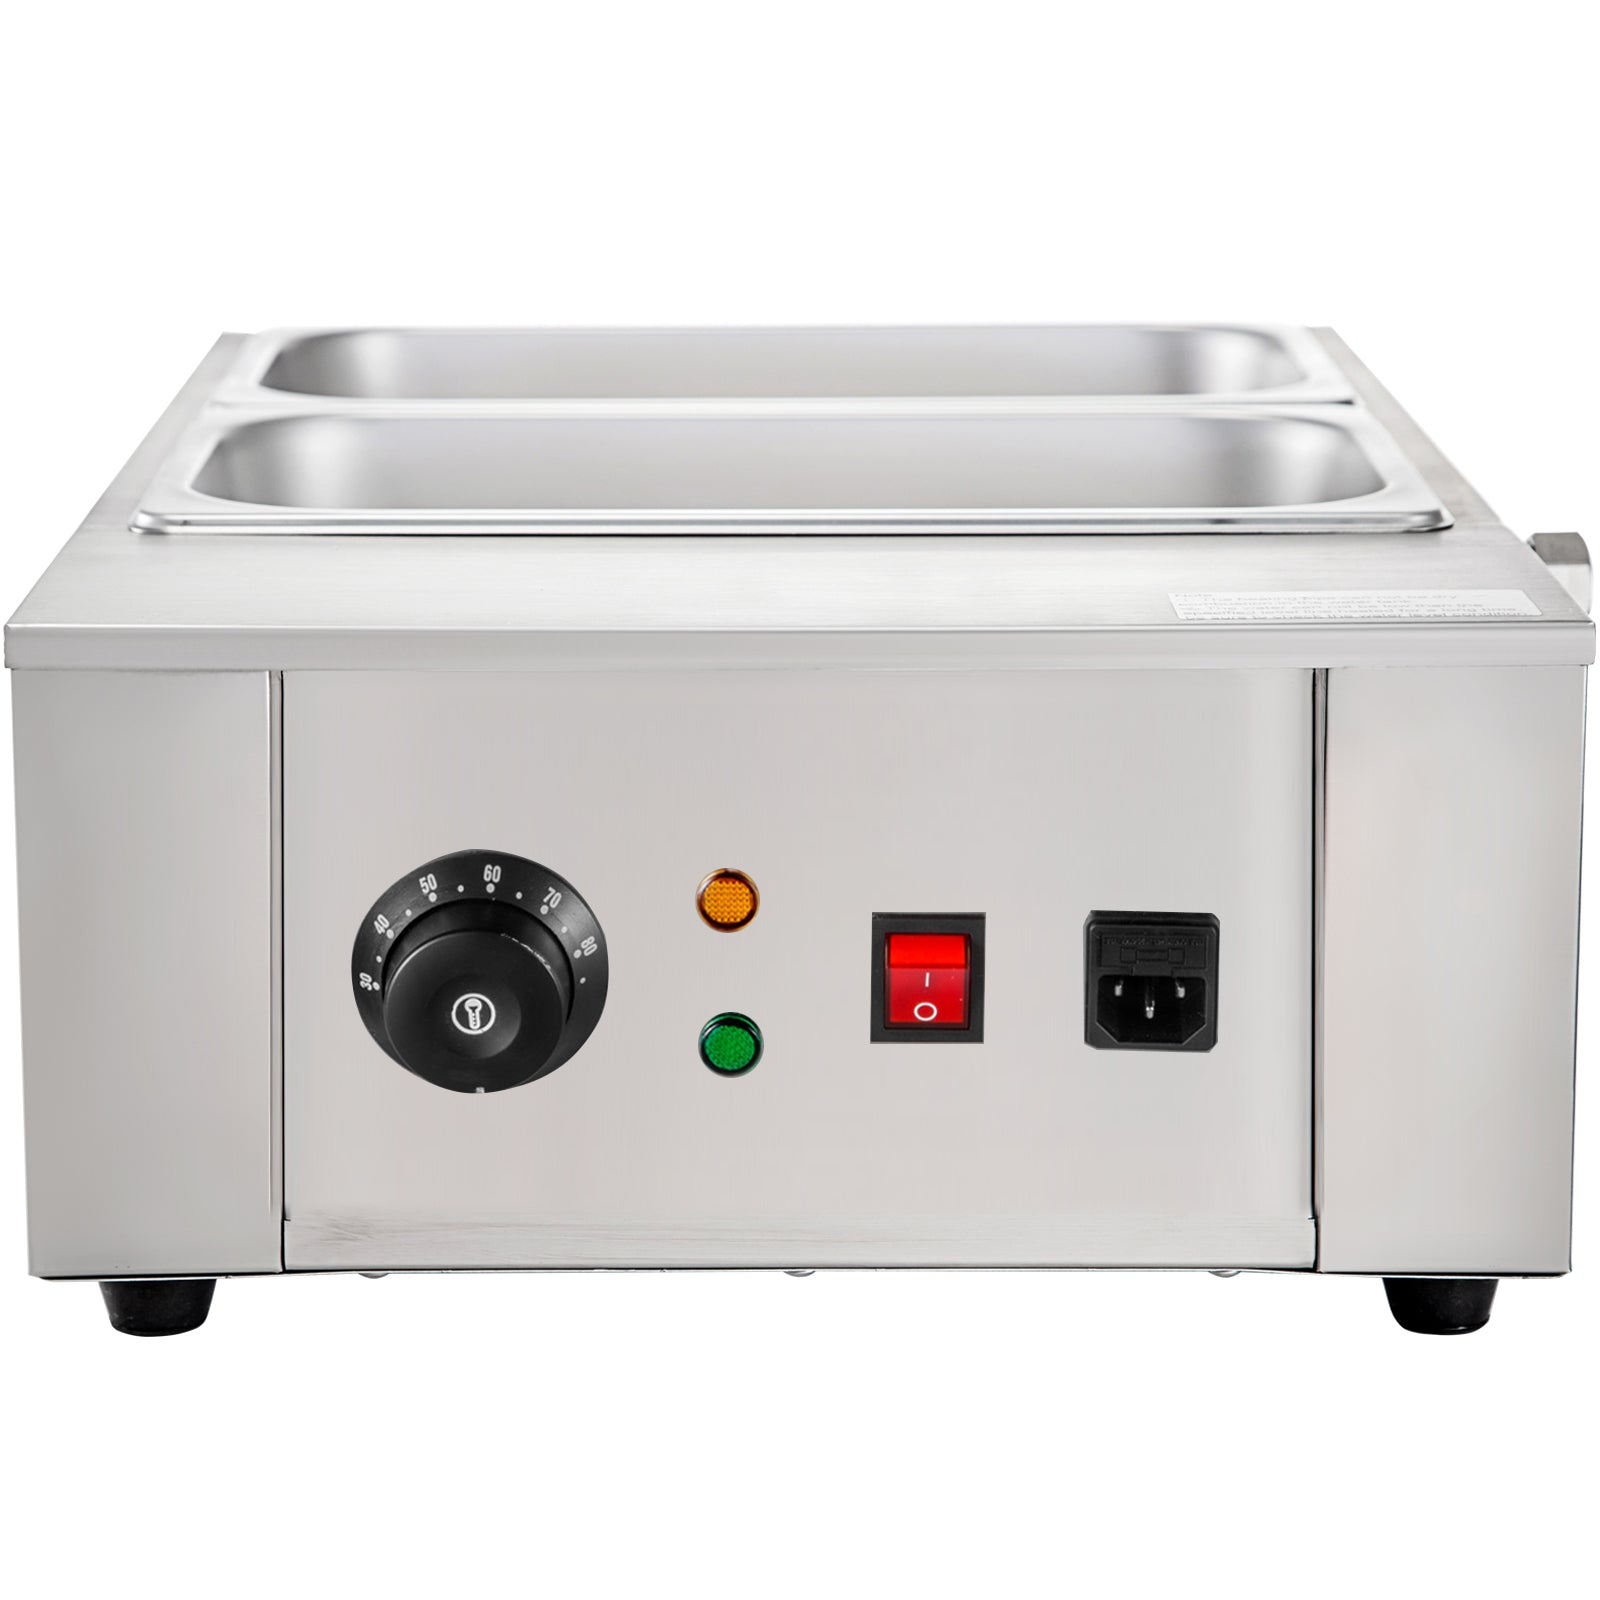 8kg Electric Water Heating Chocolate Melter Melting Machine W/2 Melting Pot